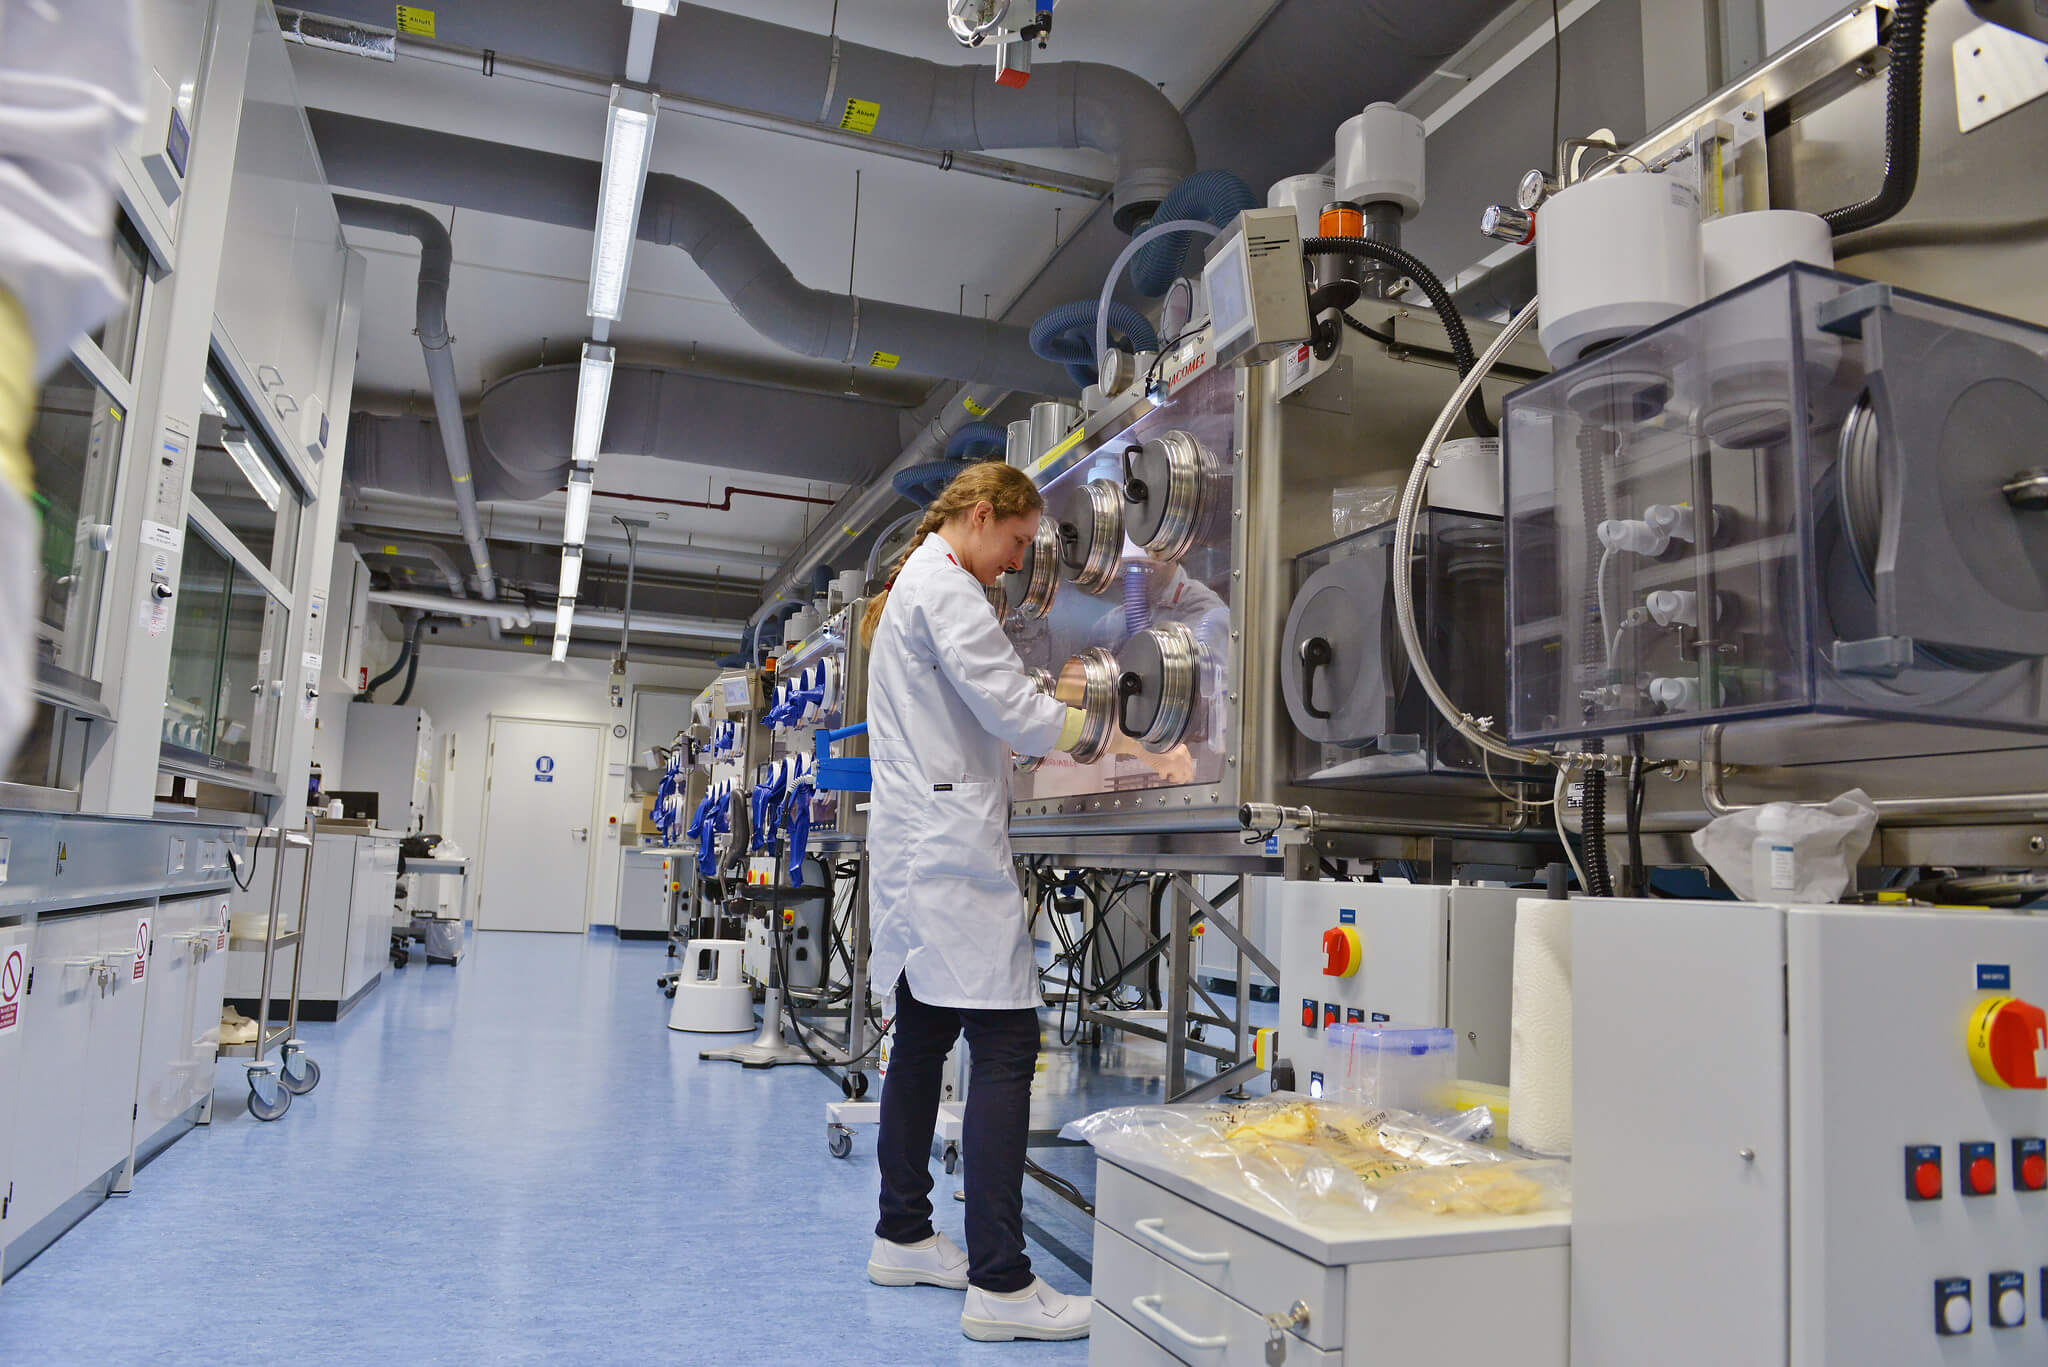 Erasto-Staff at the plutonium laboratory of the newly constructed IAEA Nuclear Material Laboratory in Seibersdorf, Austria - IAEA